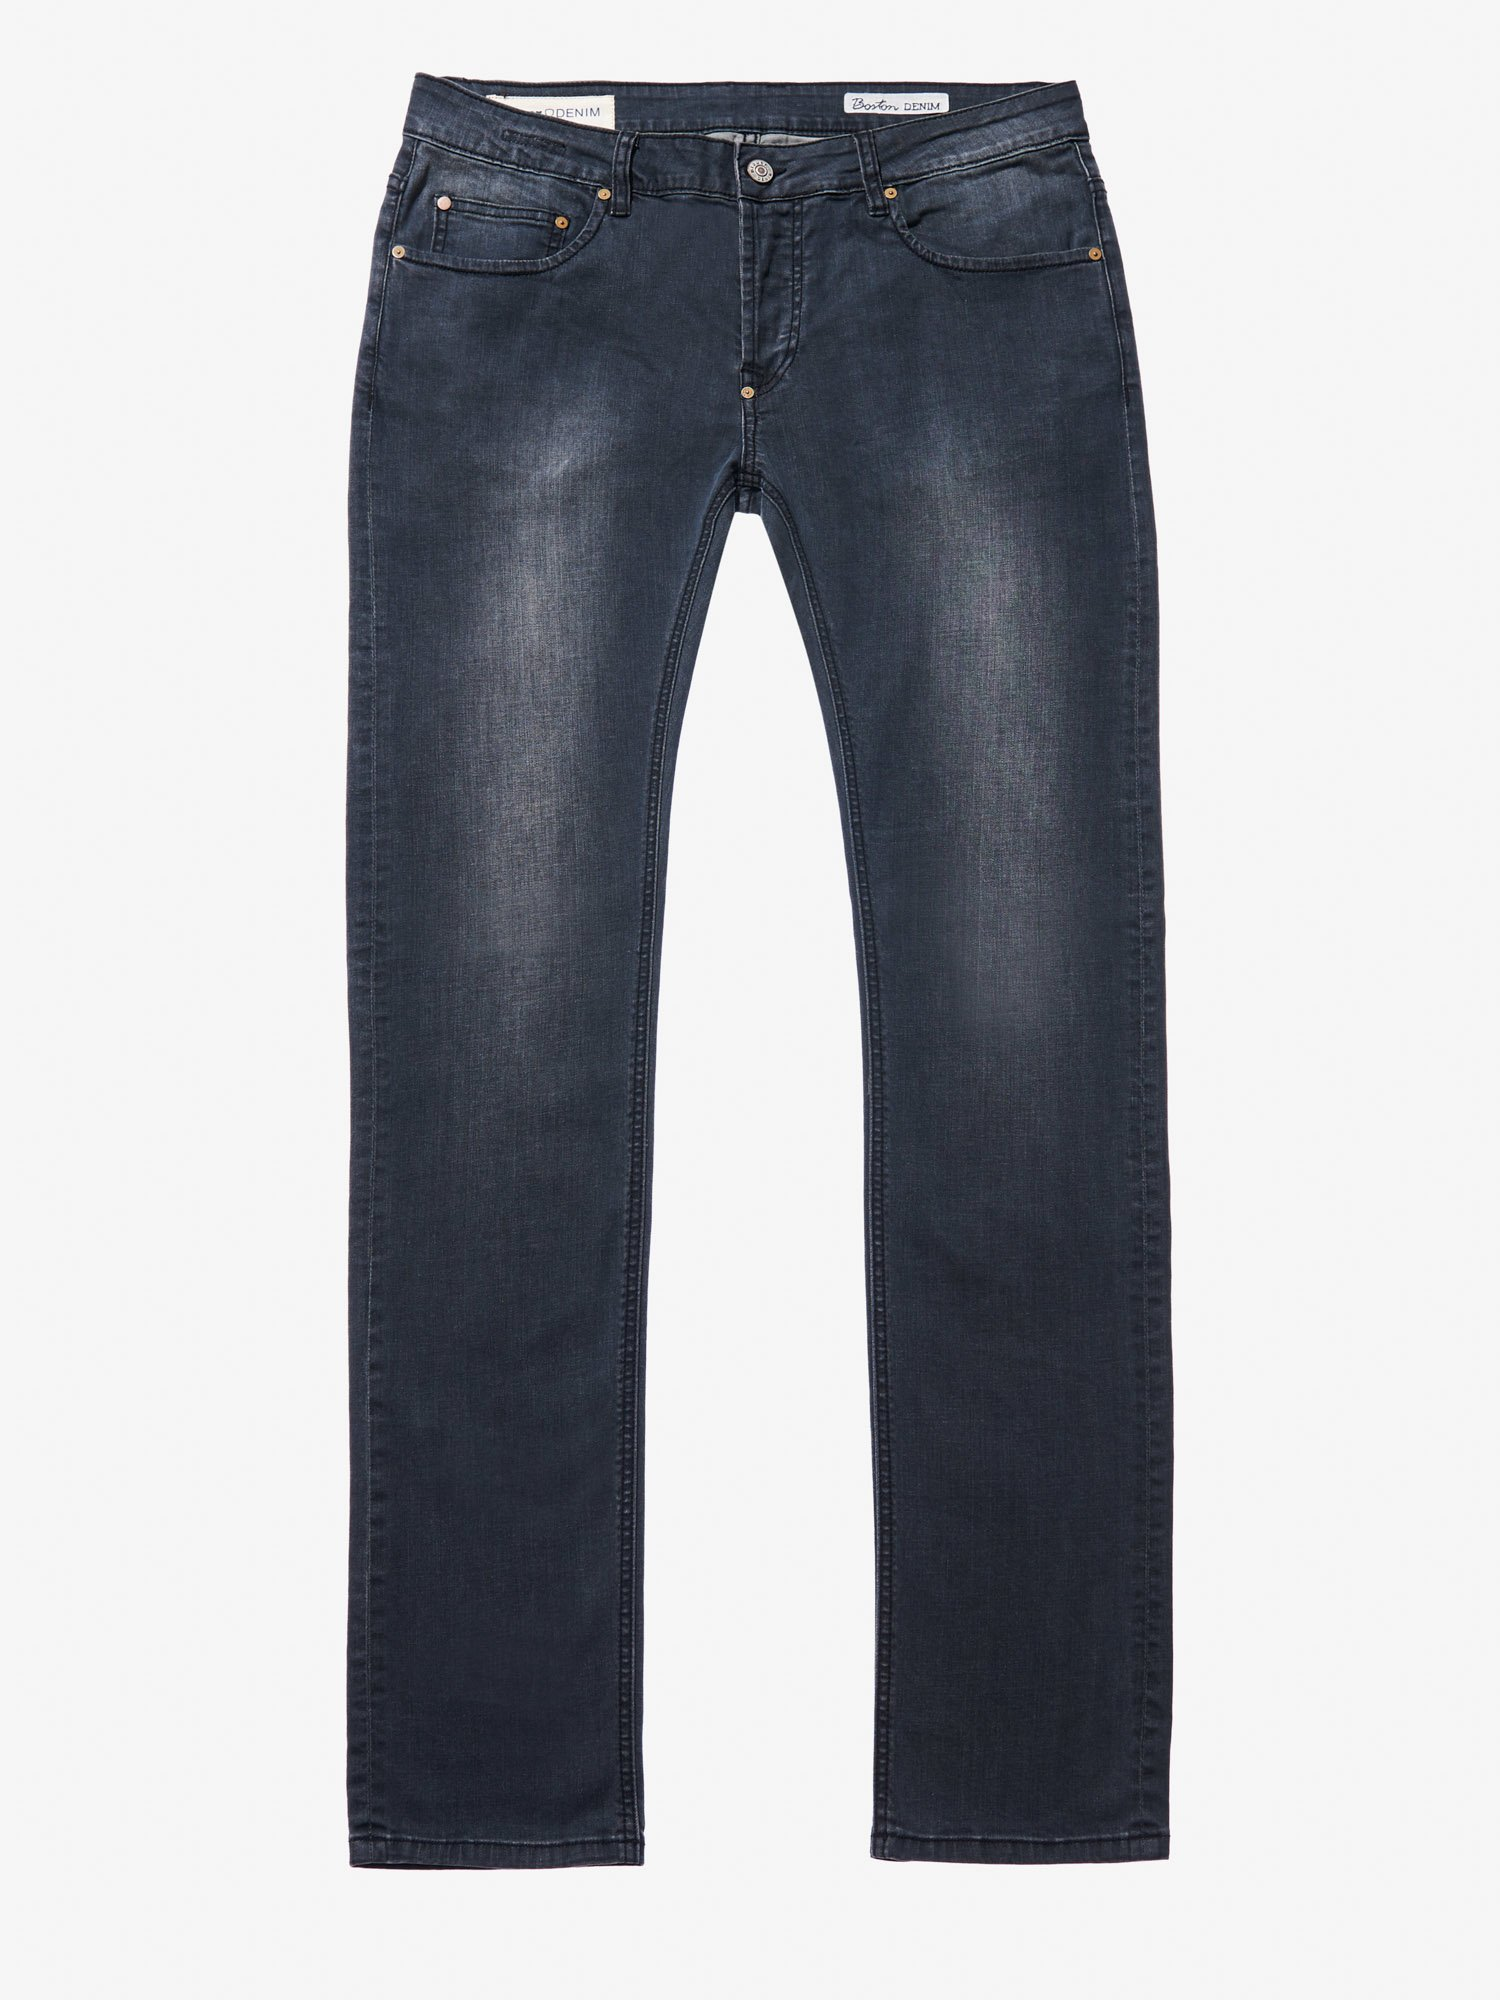 BLACK STONE WASHED DENIM - Blauer